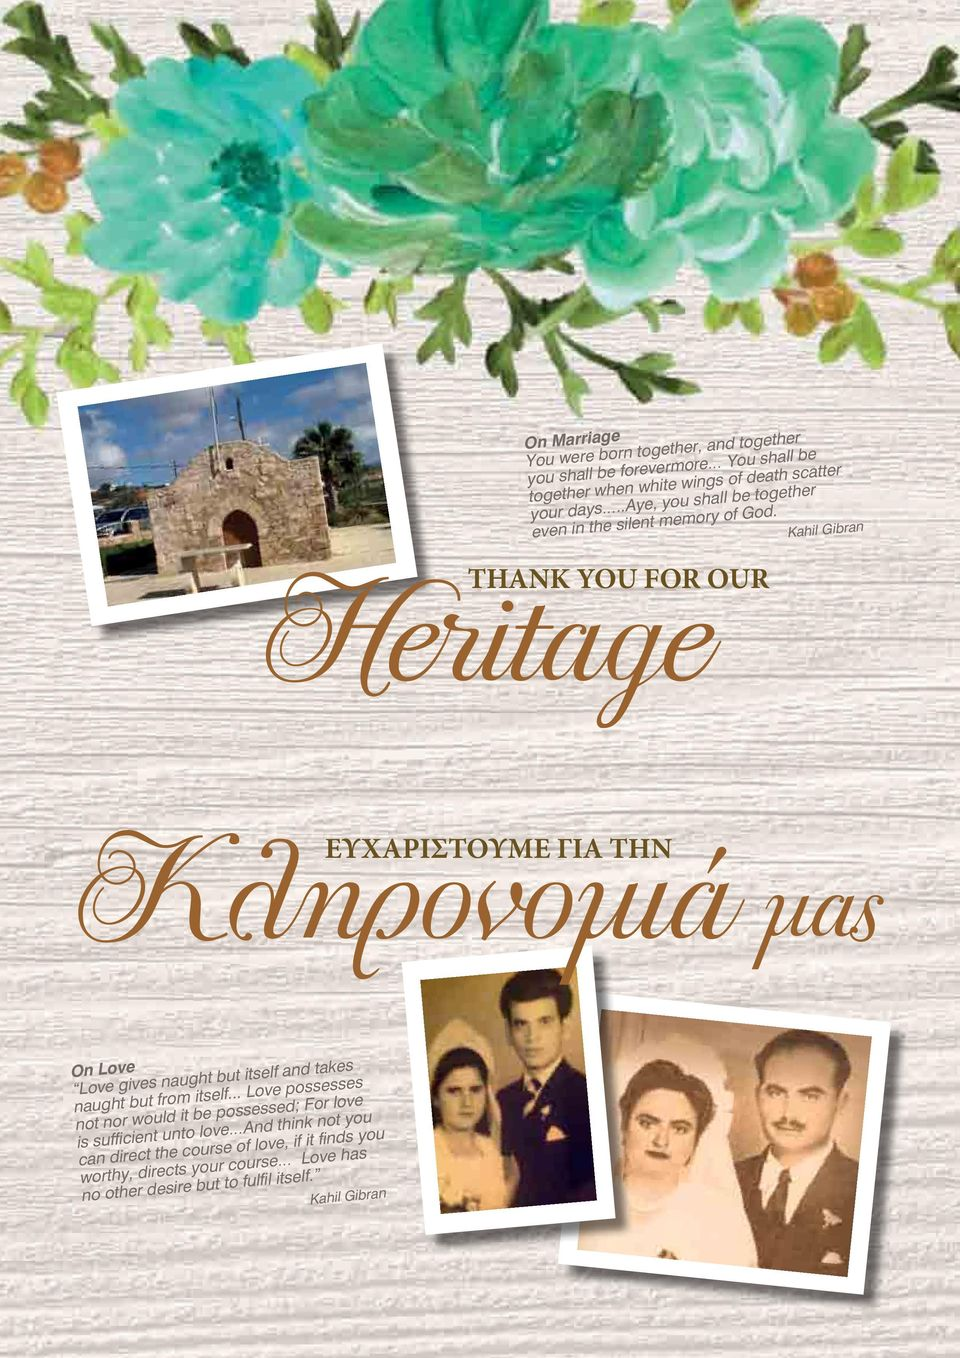 Heritage THANK YOU FOR OUR Kahil Gibran Kληρονομιά ΕΥΧΑΡΙΣΤΟΥΜΕ ΓΙΑ ΤΗΝ μας On Love Love gives naught but itself and takes naught but from itself.